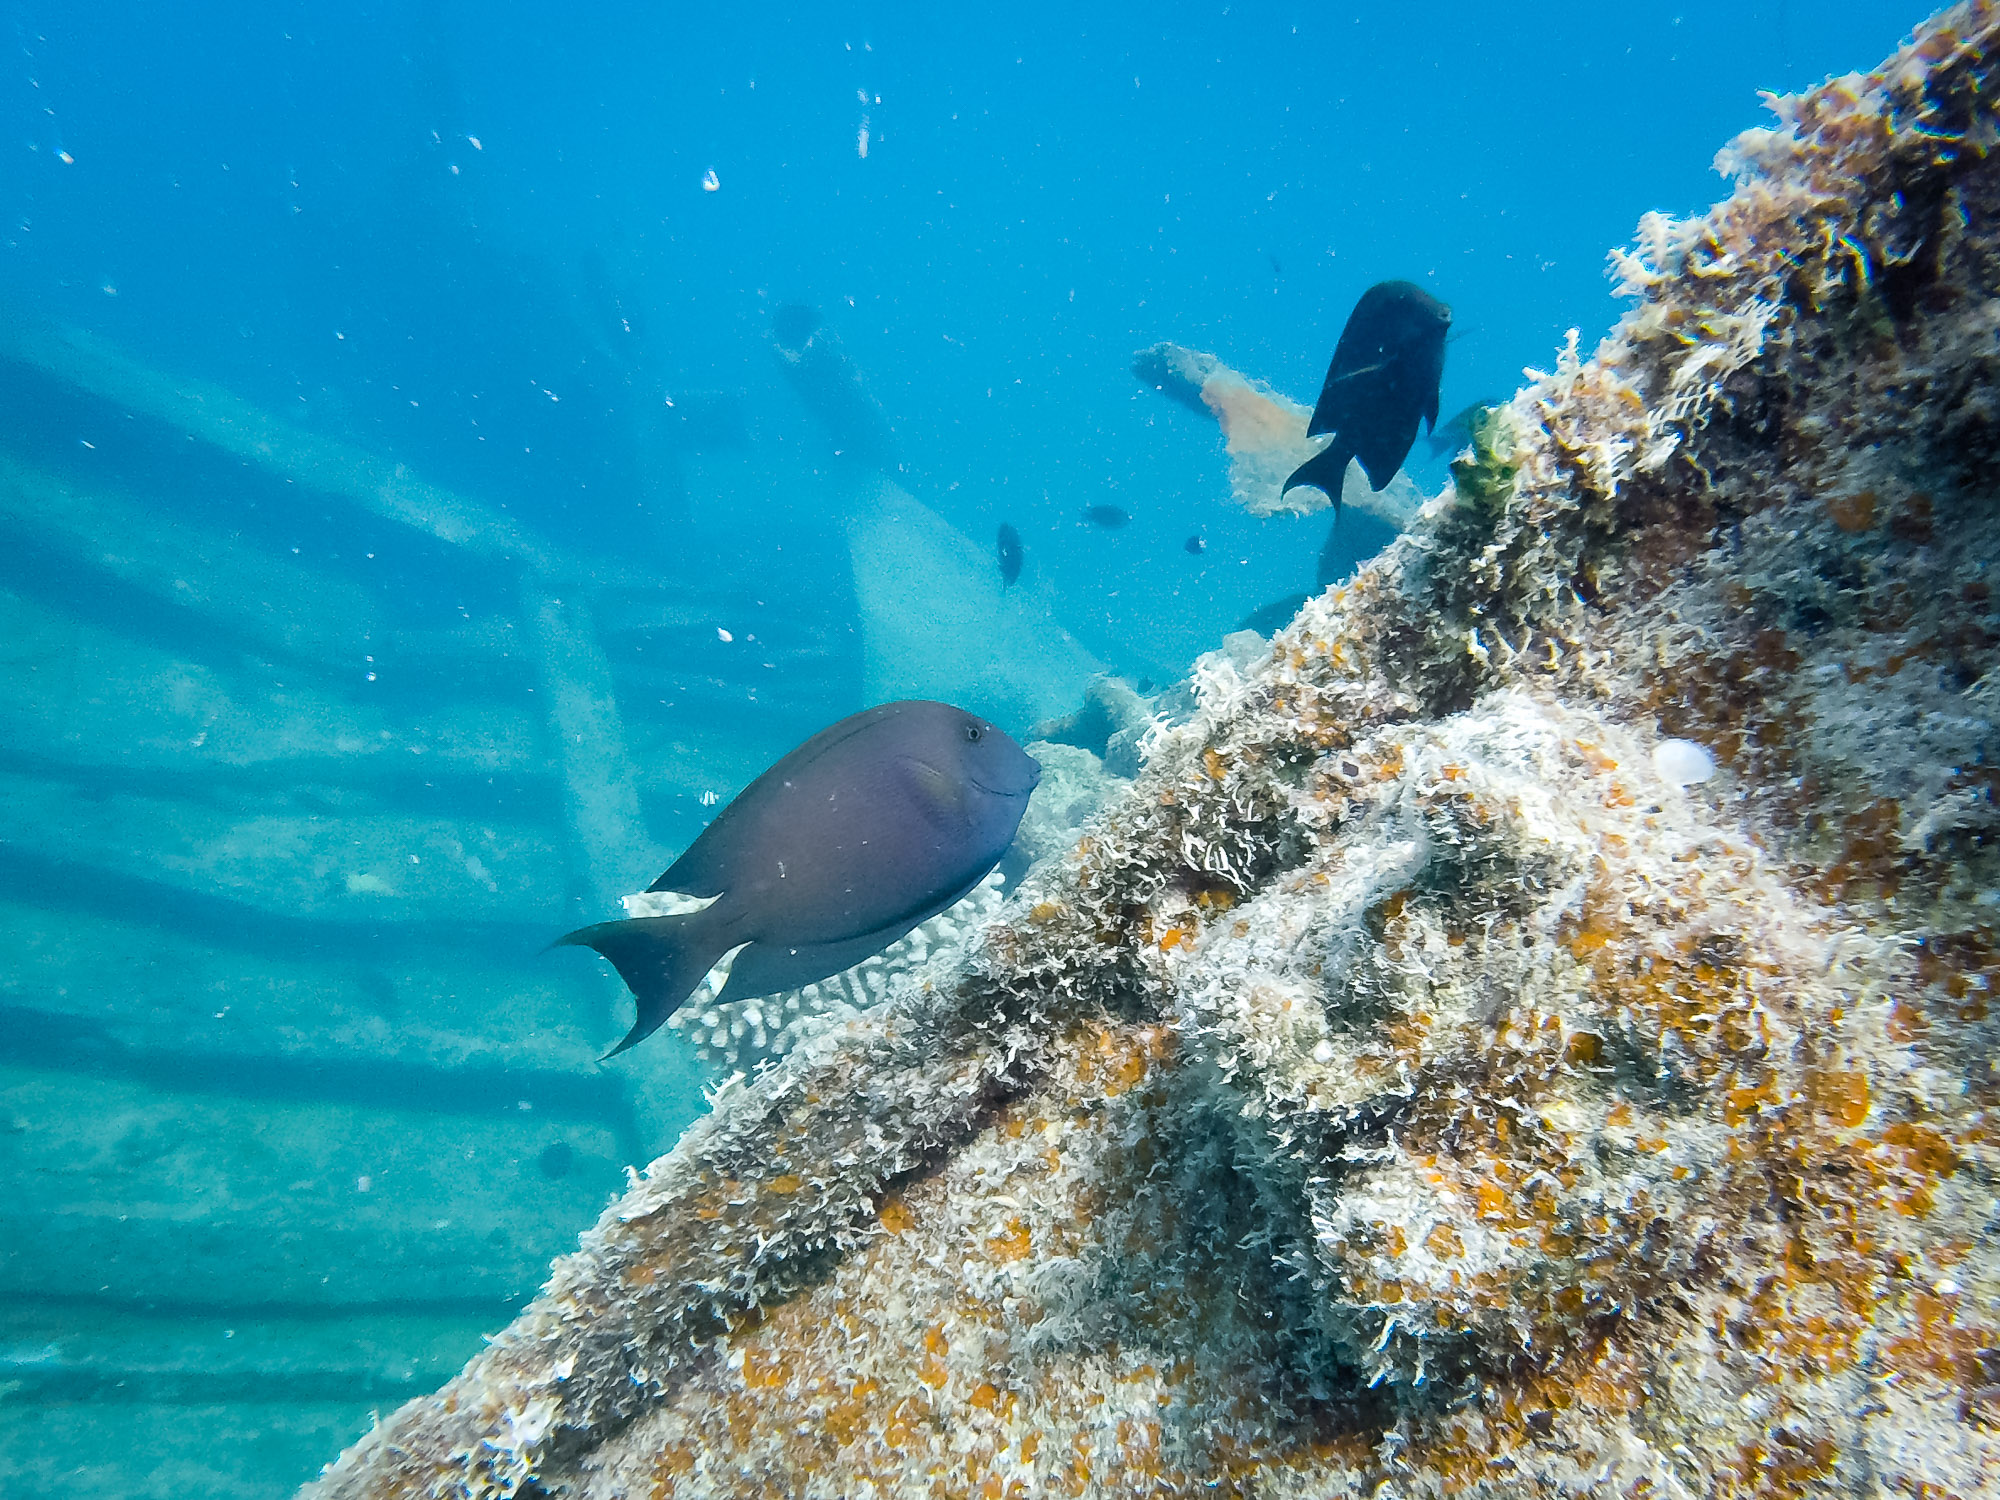 A pair of surgeonfish explore the shipwreck